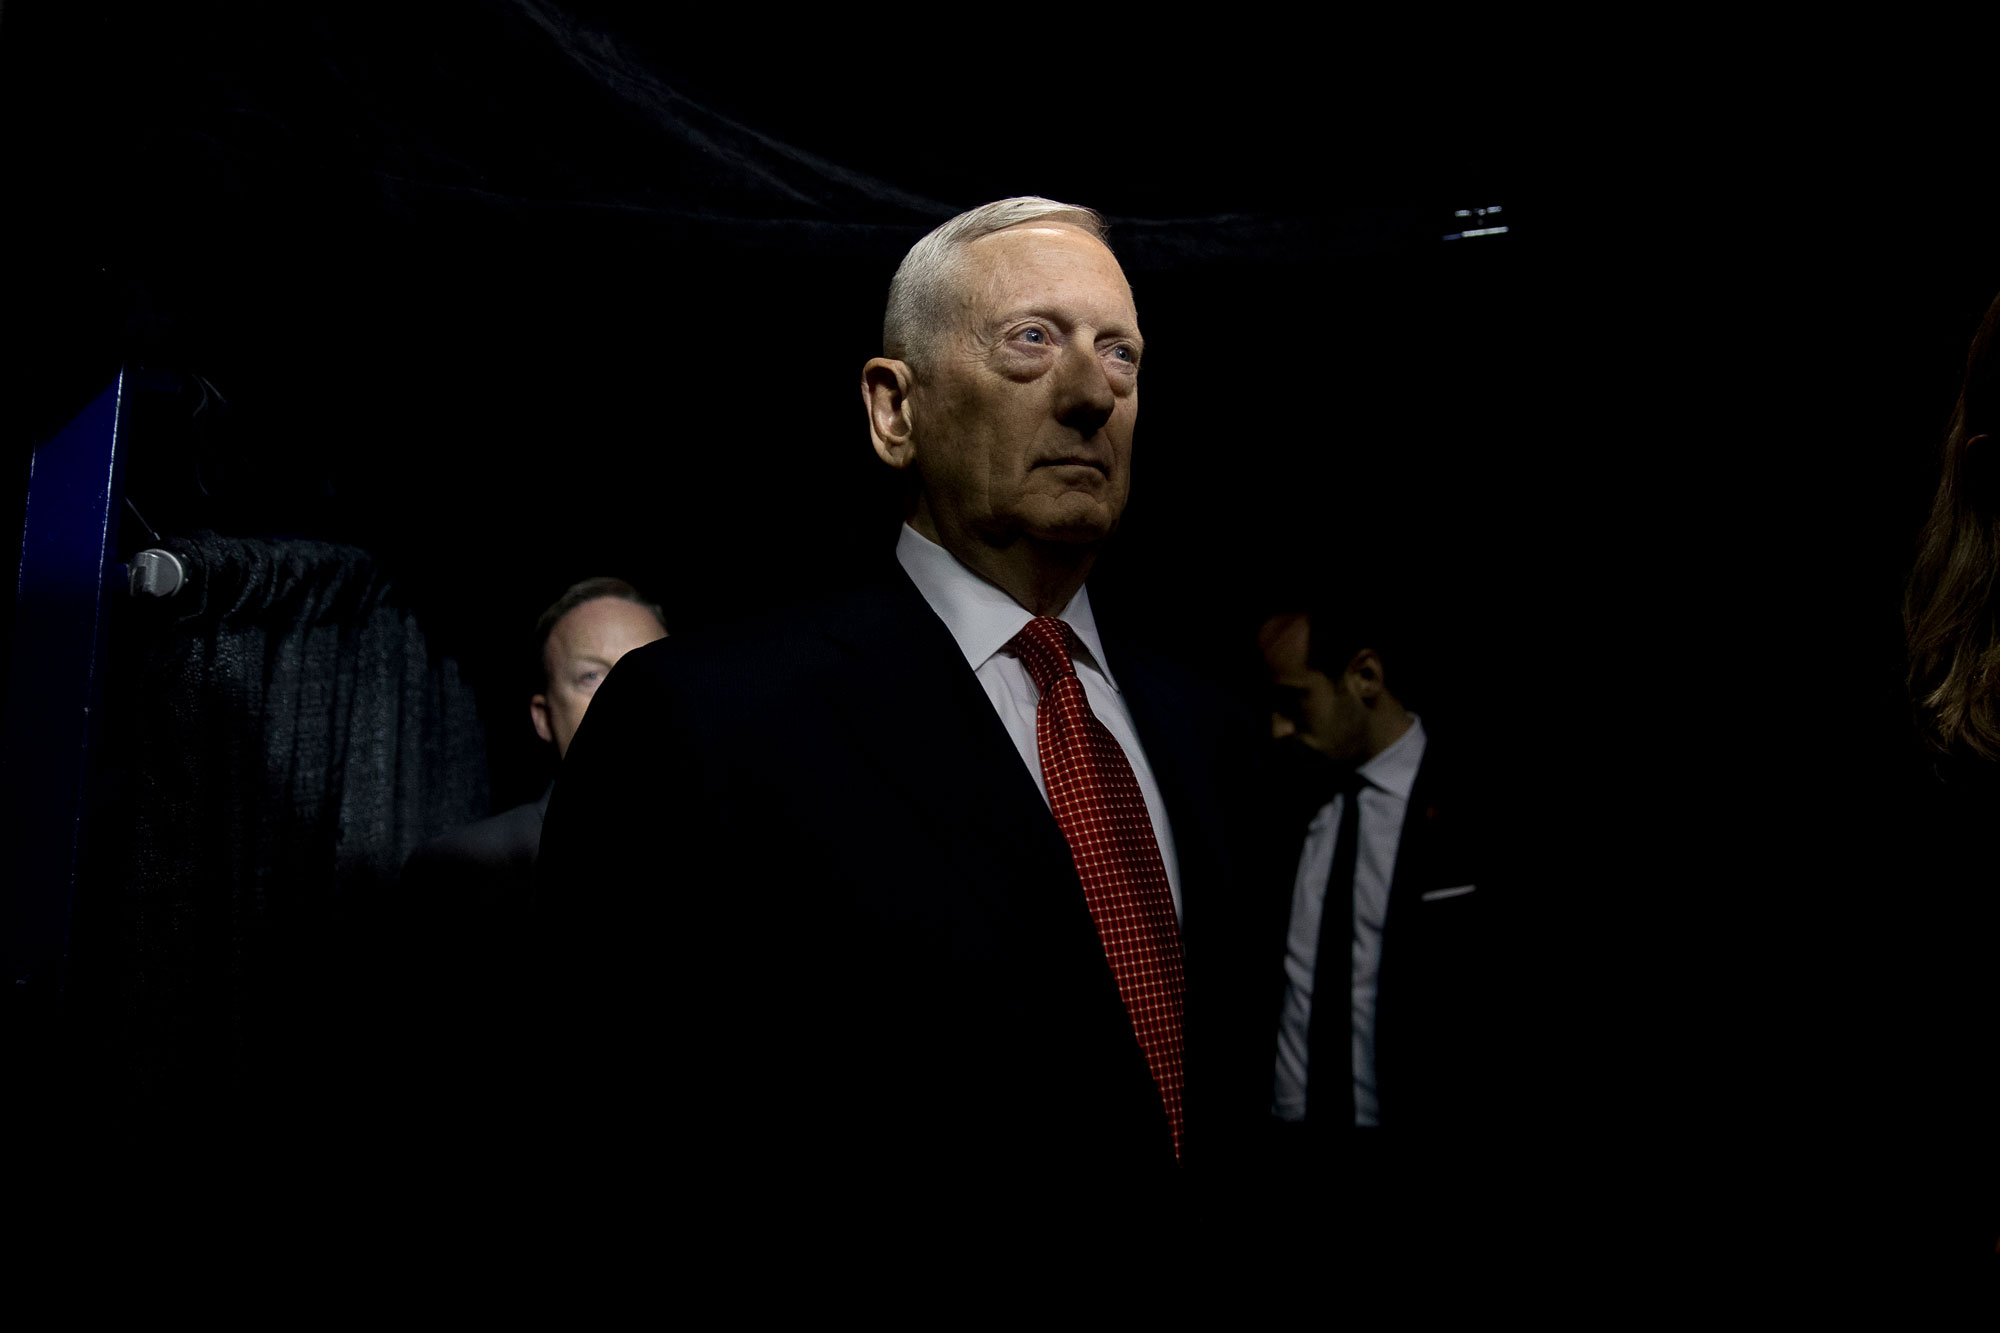 Did defense secretary nominee James Mattis commit war crimes in Iraq?